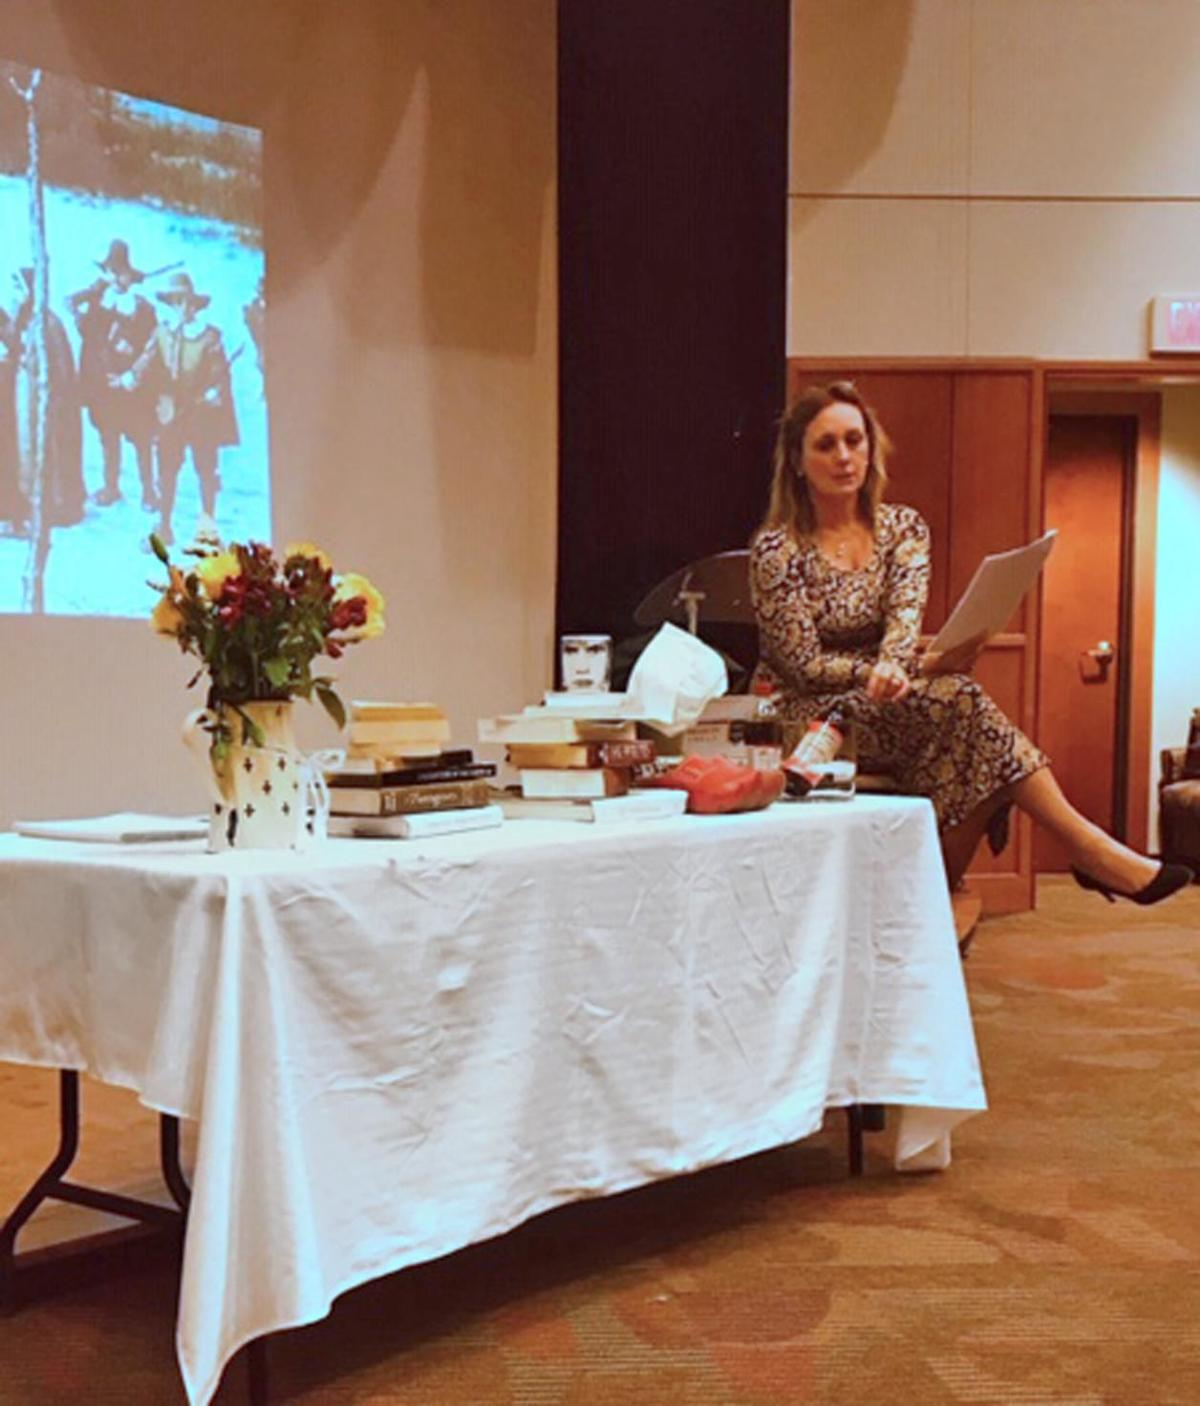 Louise van Tartwijk gives her take on Washington's notable women in lecture series